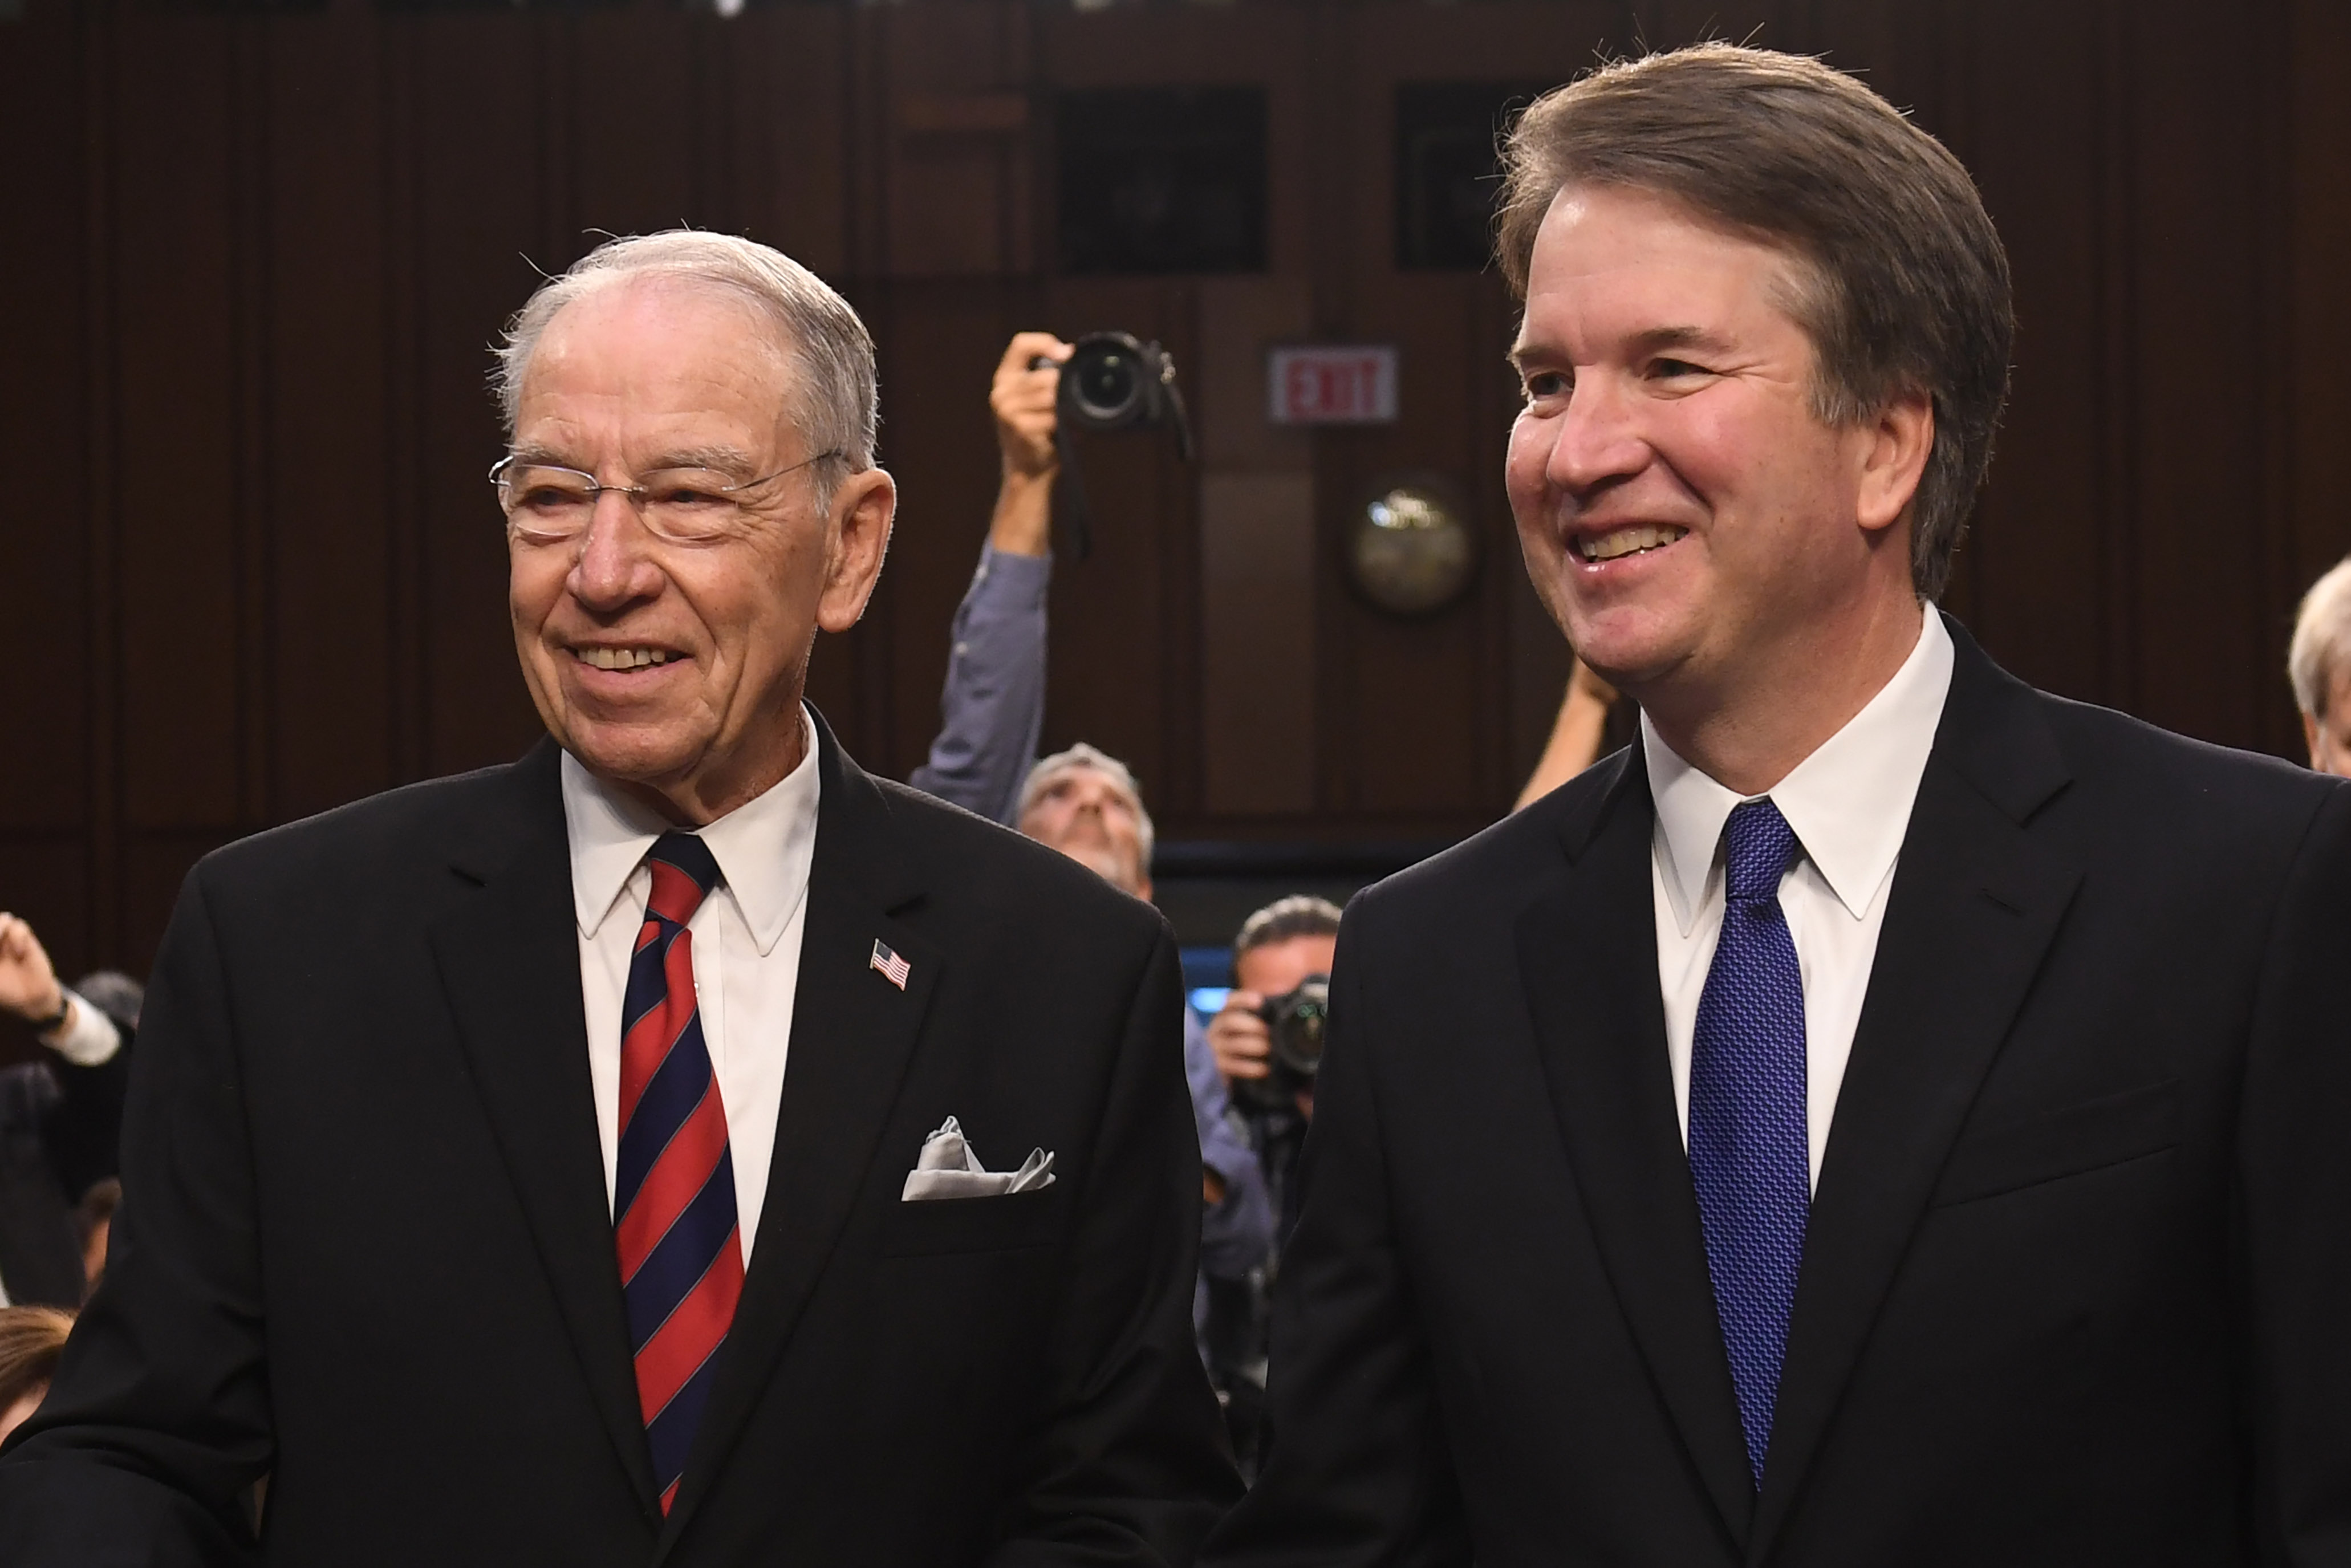 Justice Brett Kavanaugh stands with Sen. Chuck Grassley as he arrives for his confirmation hearing on September 4, 2018. (Saul Loeb/AFP/Getty Images)